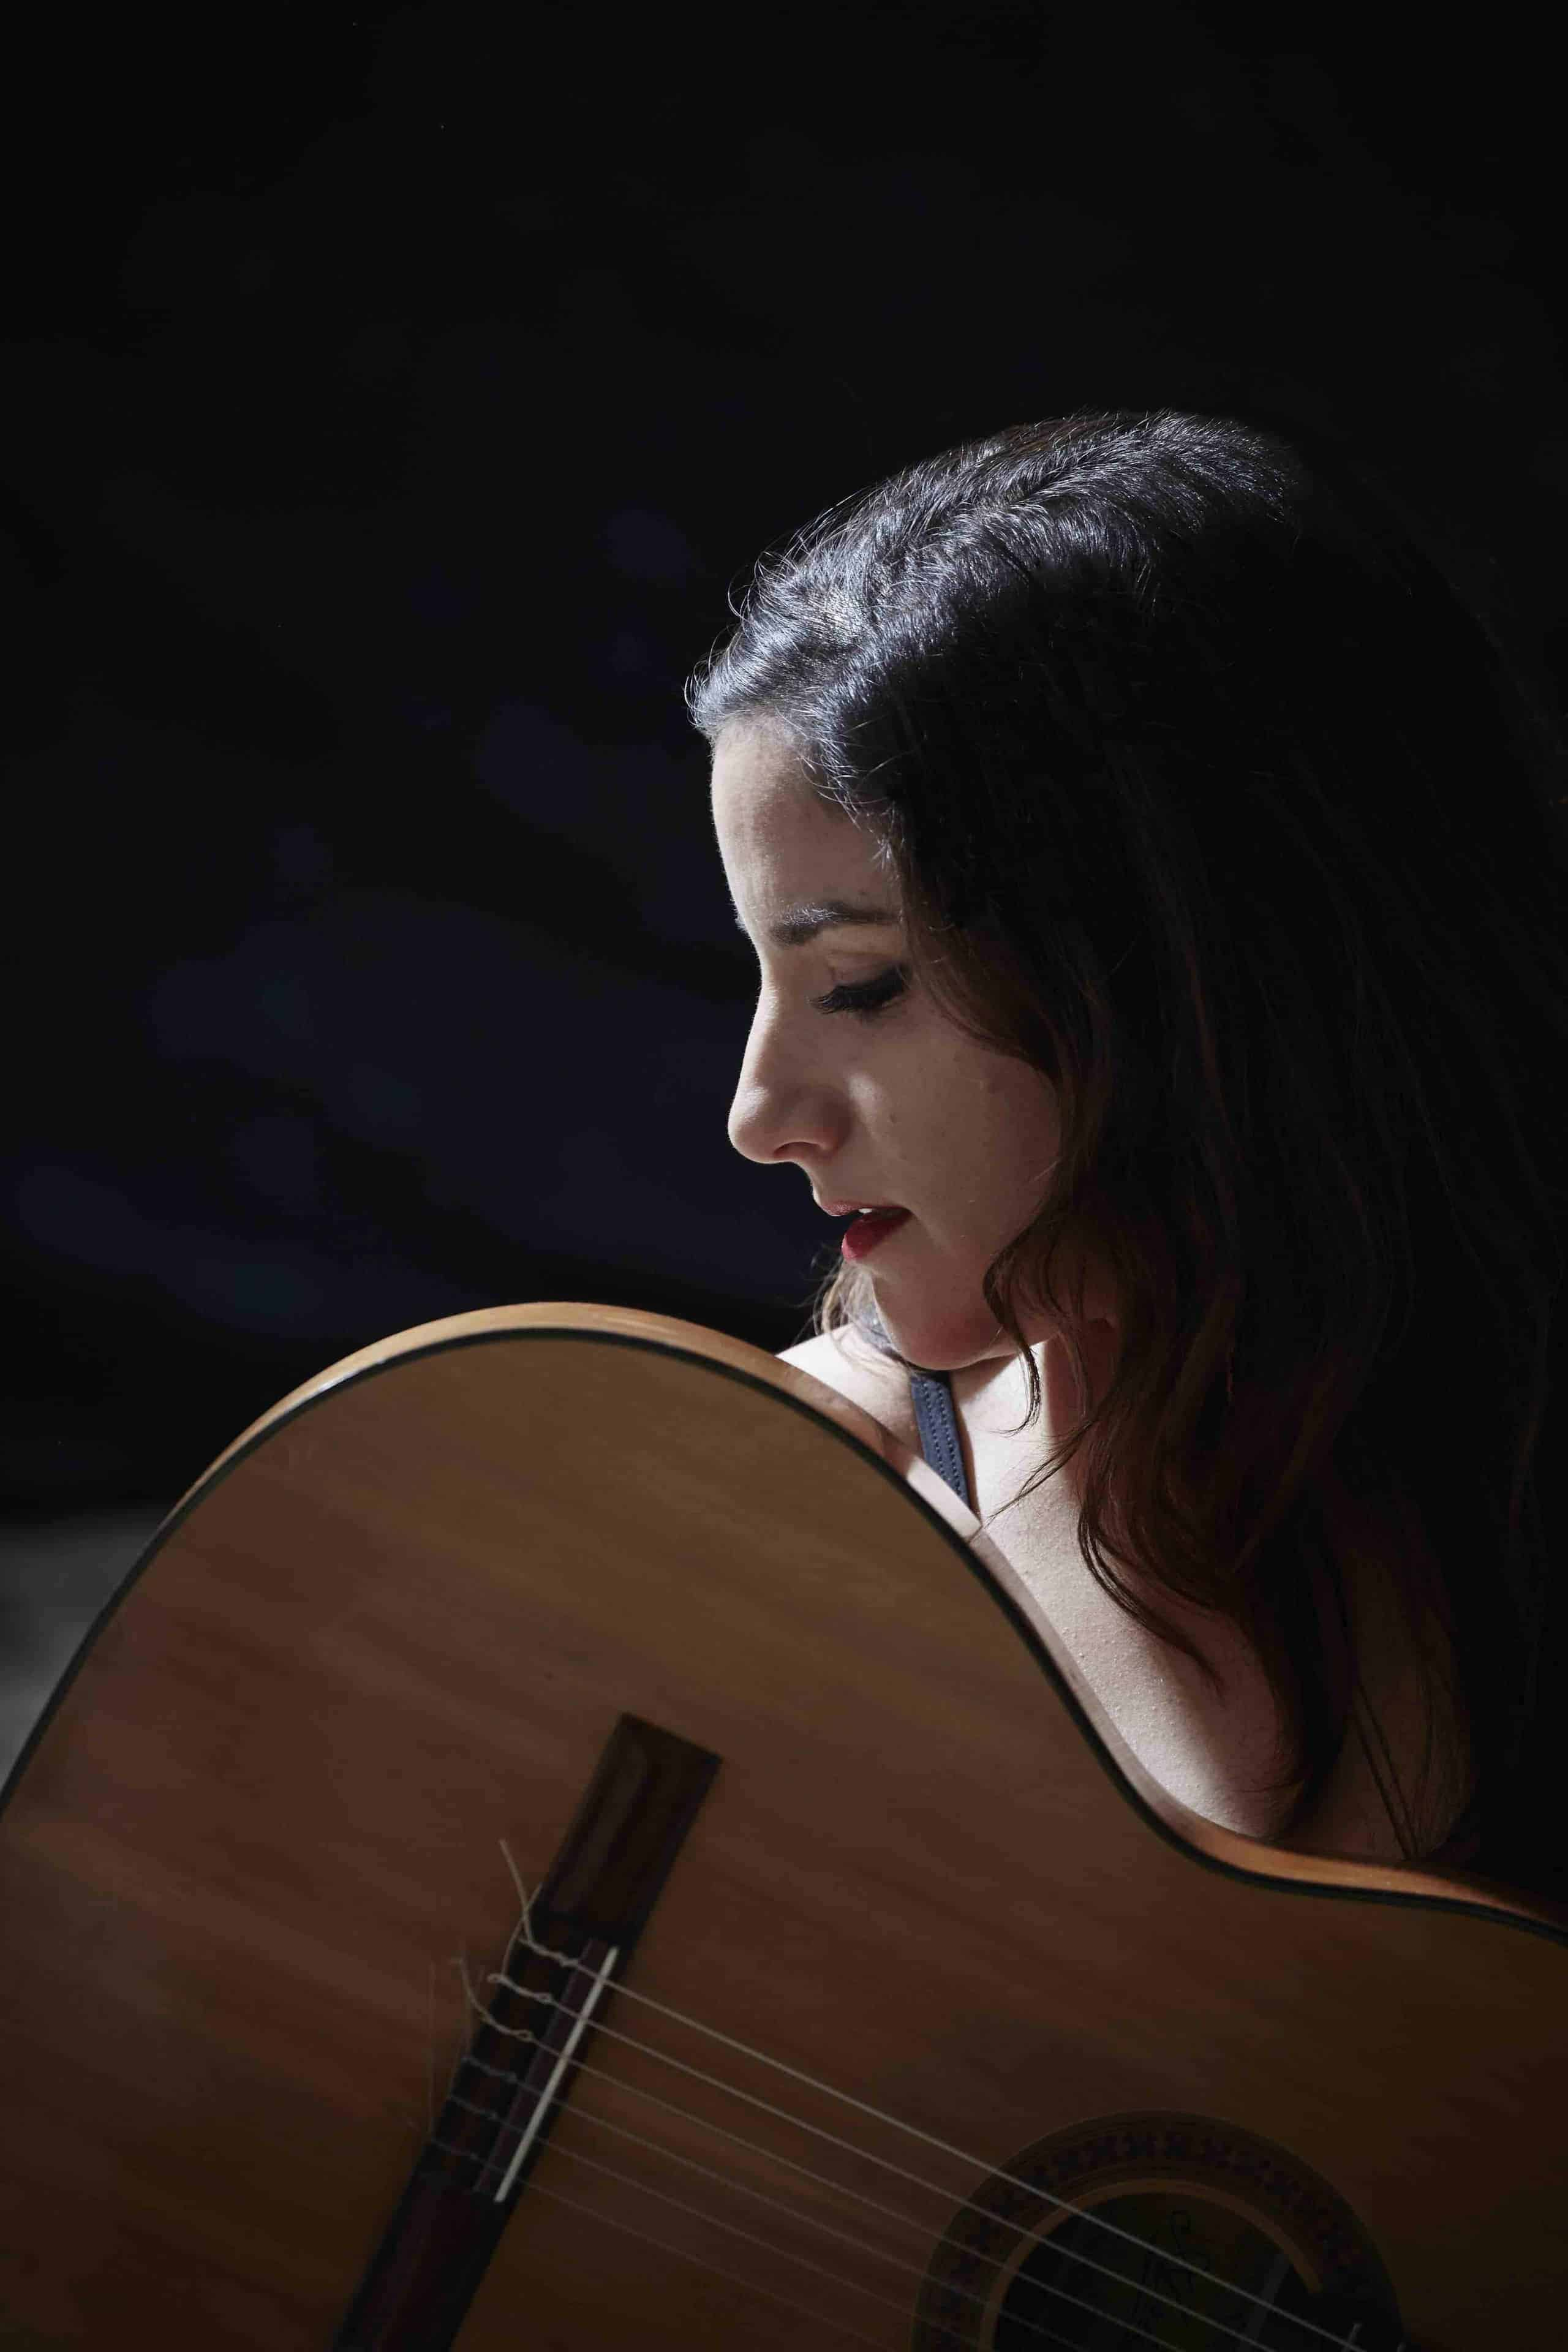 Ani Cordero will perform at Mass MoCA at 8 p.m. on Saturday night. Photo by Bek Andersen, courtesy of the artist